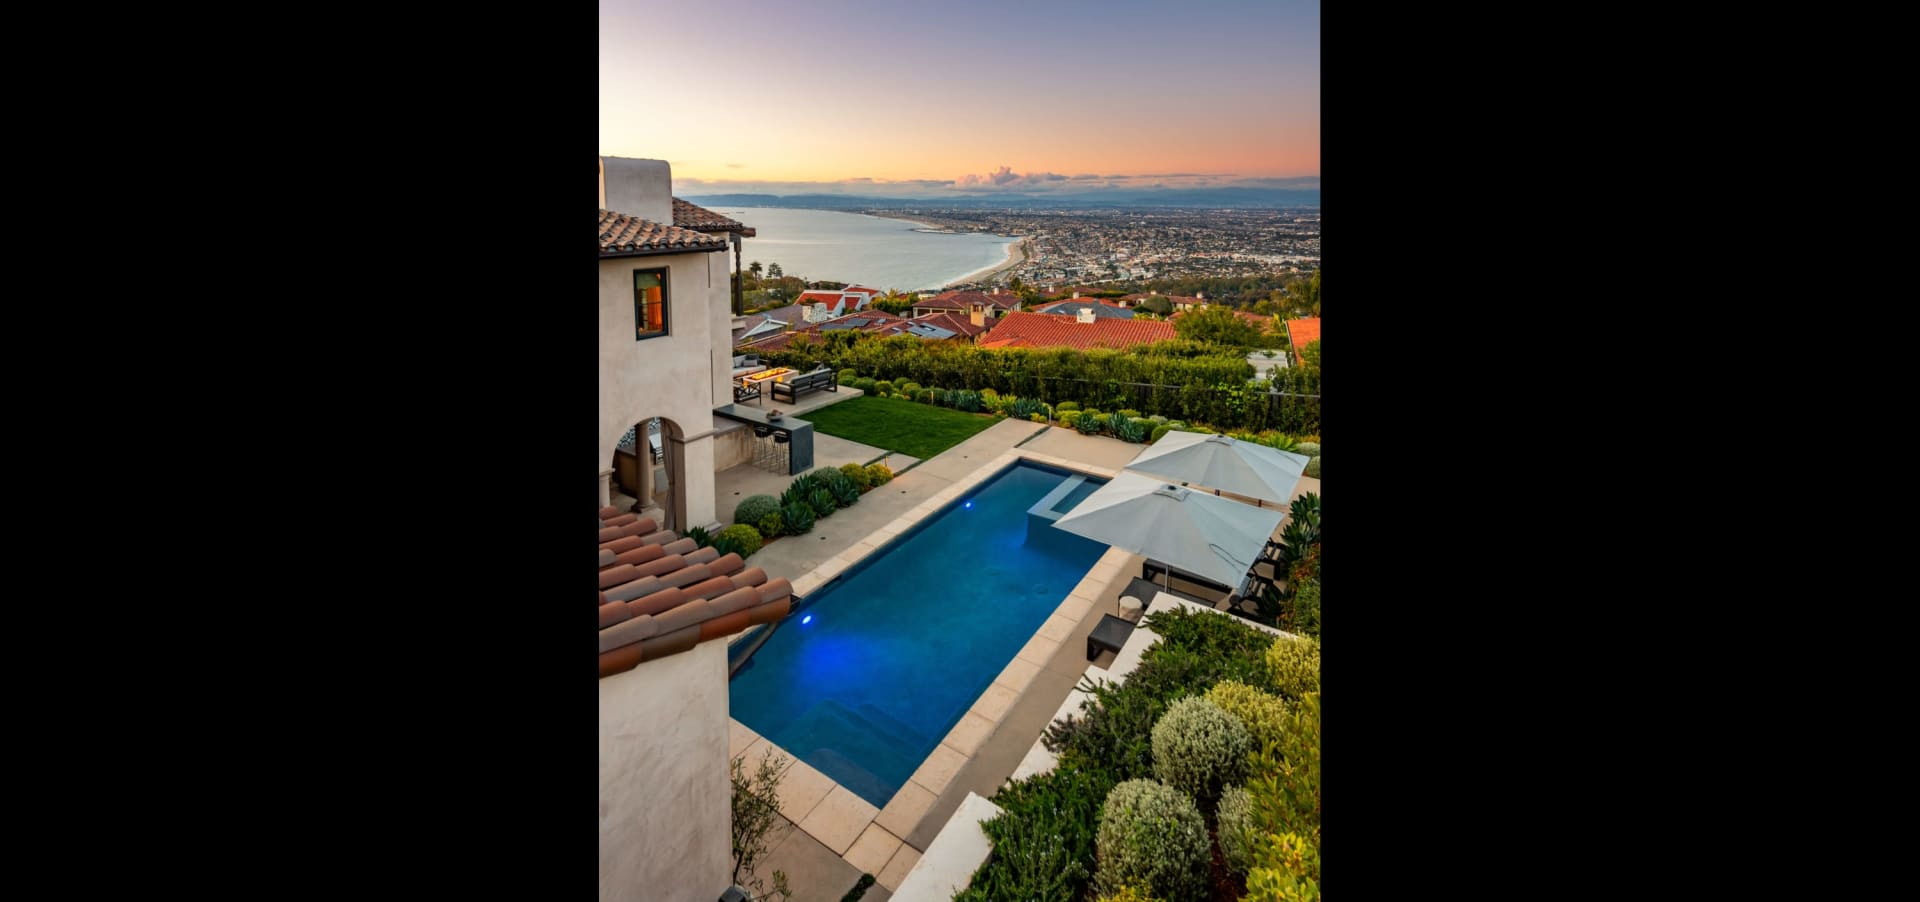 Panoramic Views in Palos Verdes Estates